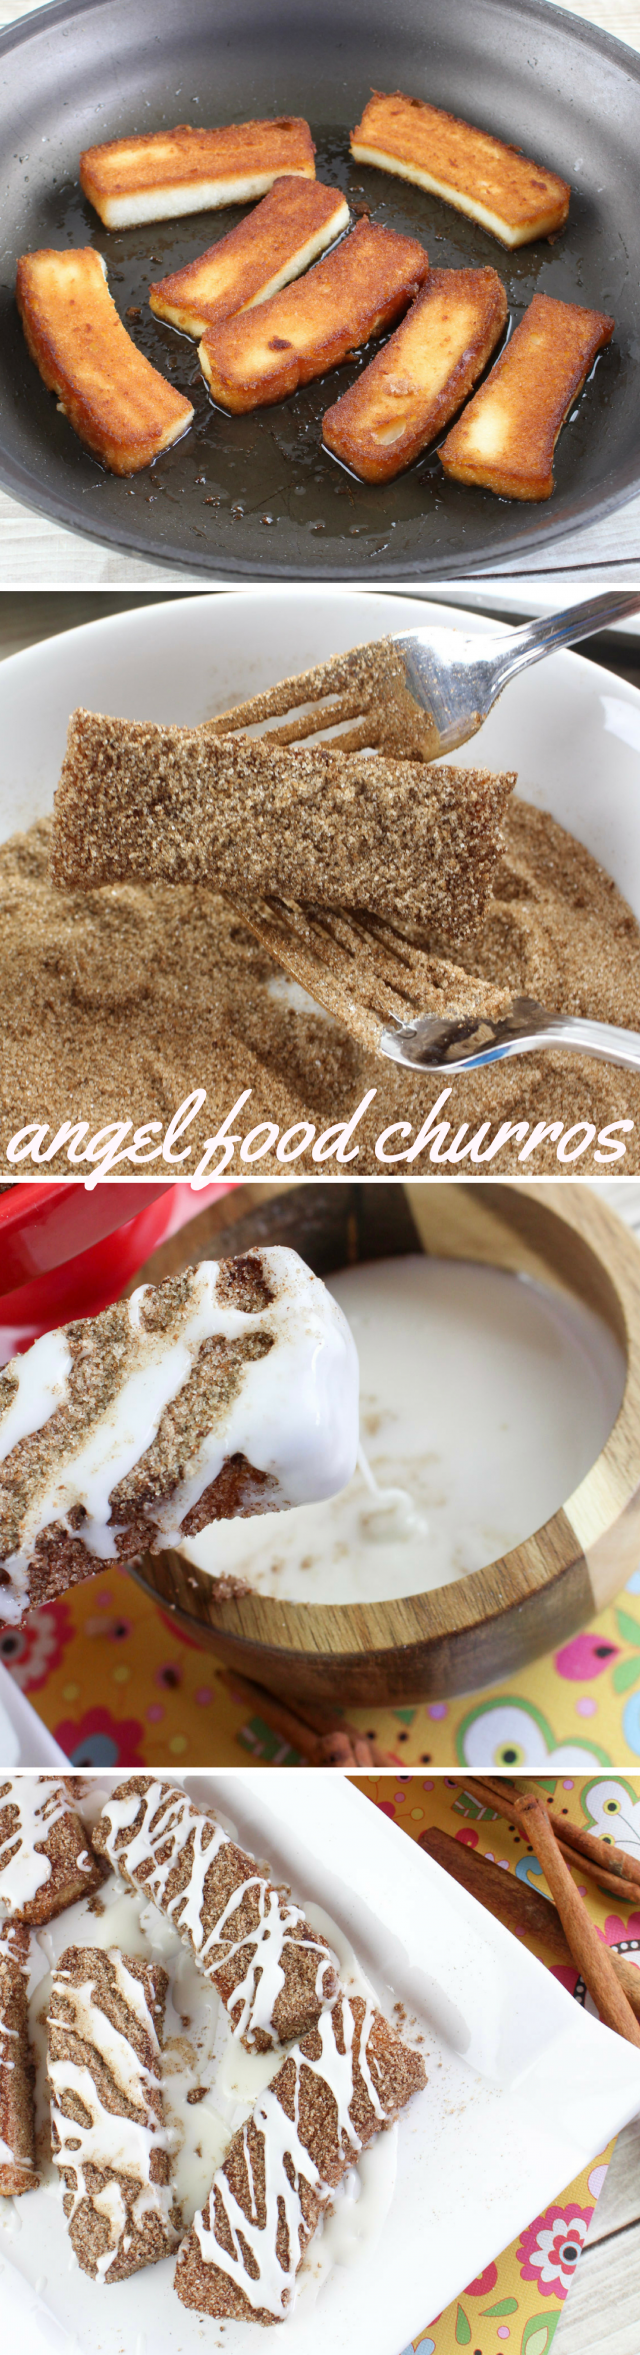 Angel Food Cake Churro Sticks with Tequila Lime Glaze Recipe - Angel food cake sliced, fried in oil, dusted with cinnamon sugar and then dipped into a decadent tequila lime glaze. OMG YES.